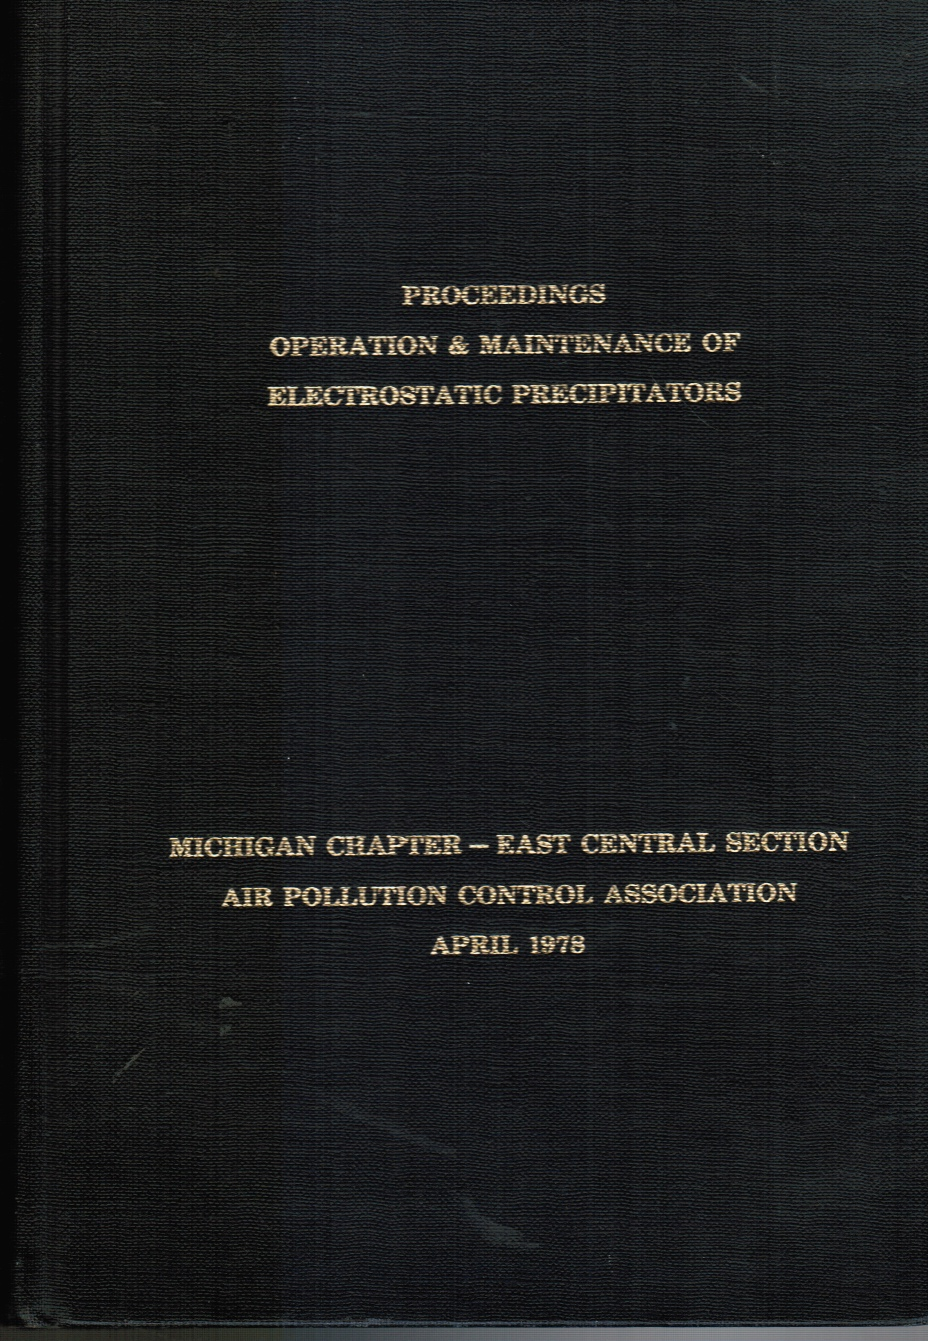 Image for A Specialty Conference on Operation and Maintenance of Electrostatic Precipitators, April 10-12, 1978, the Hyatt Regency Hotel, Dearborn, Michigan